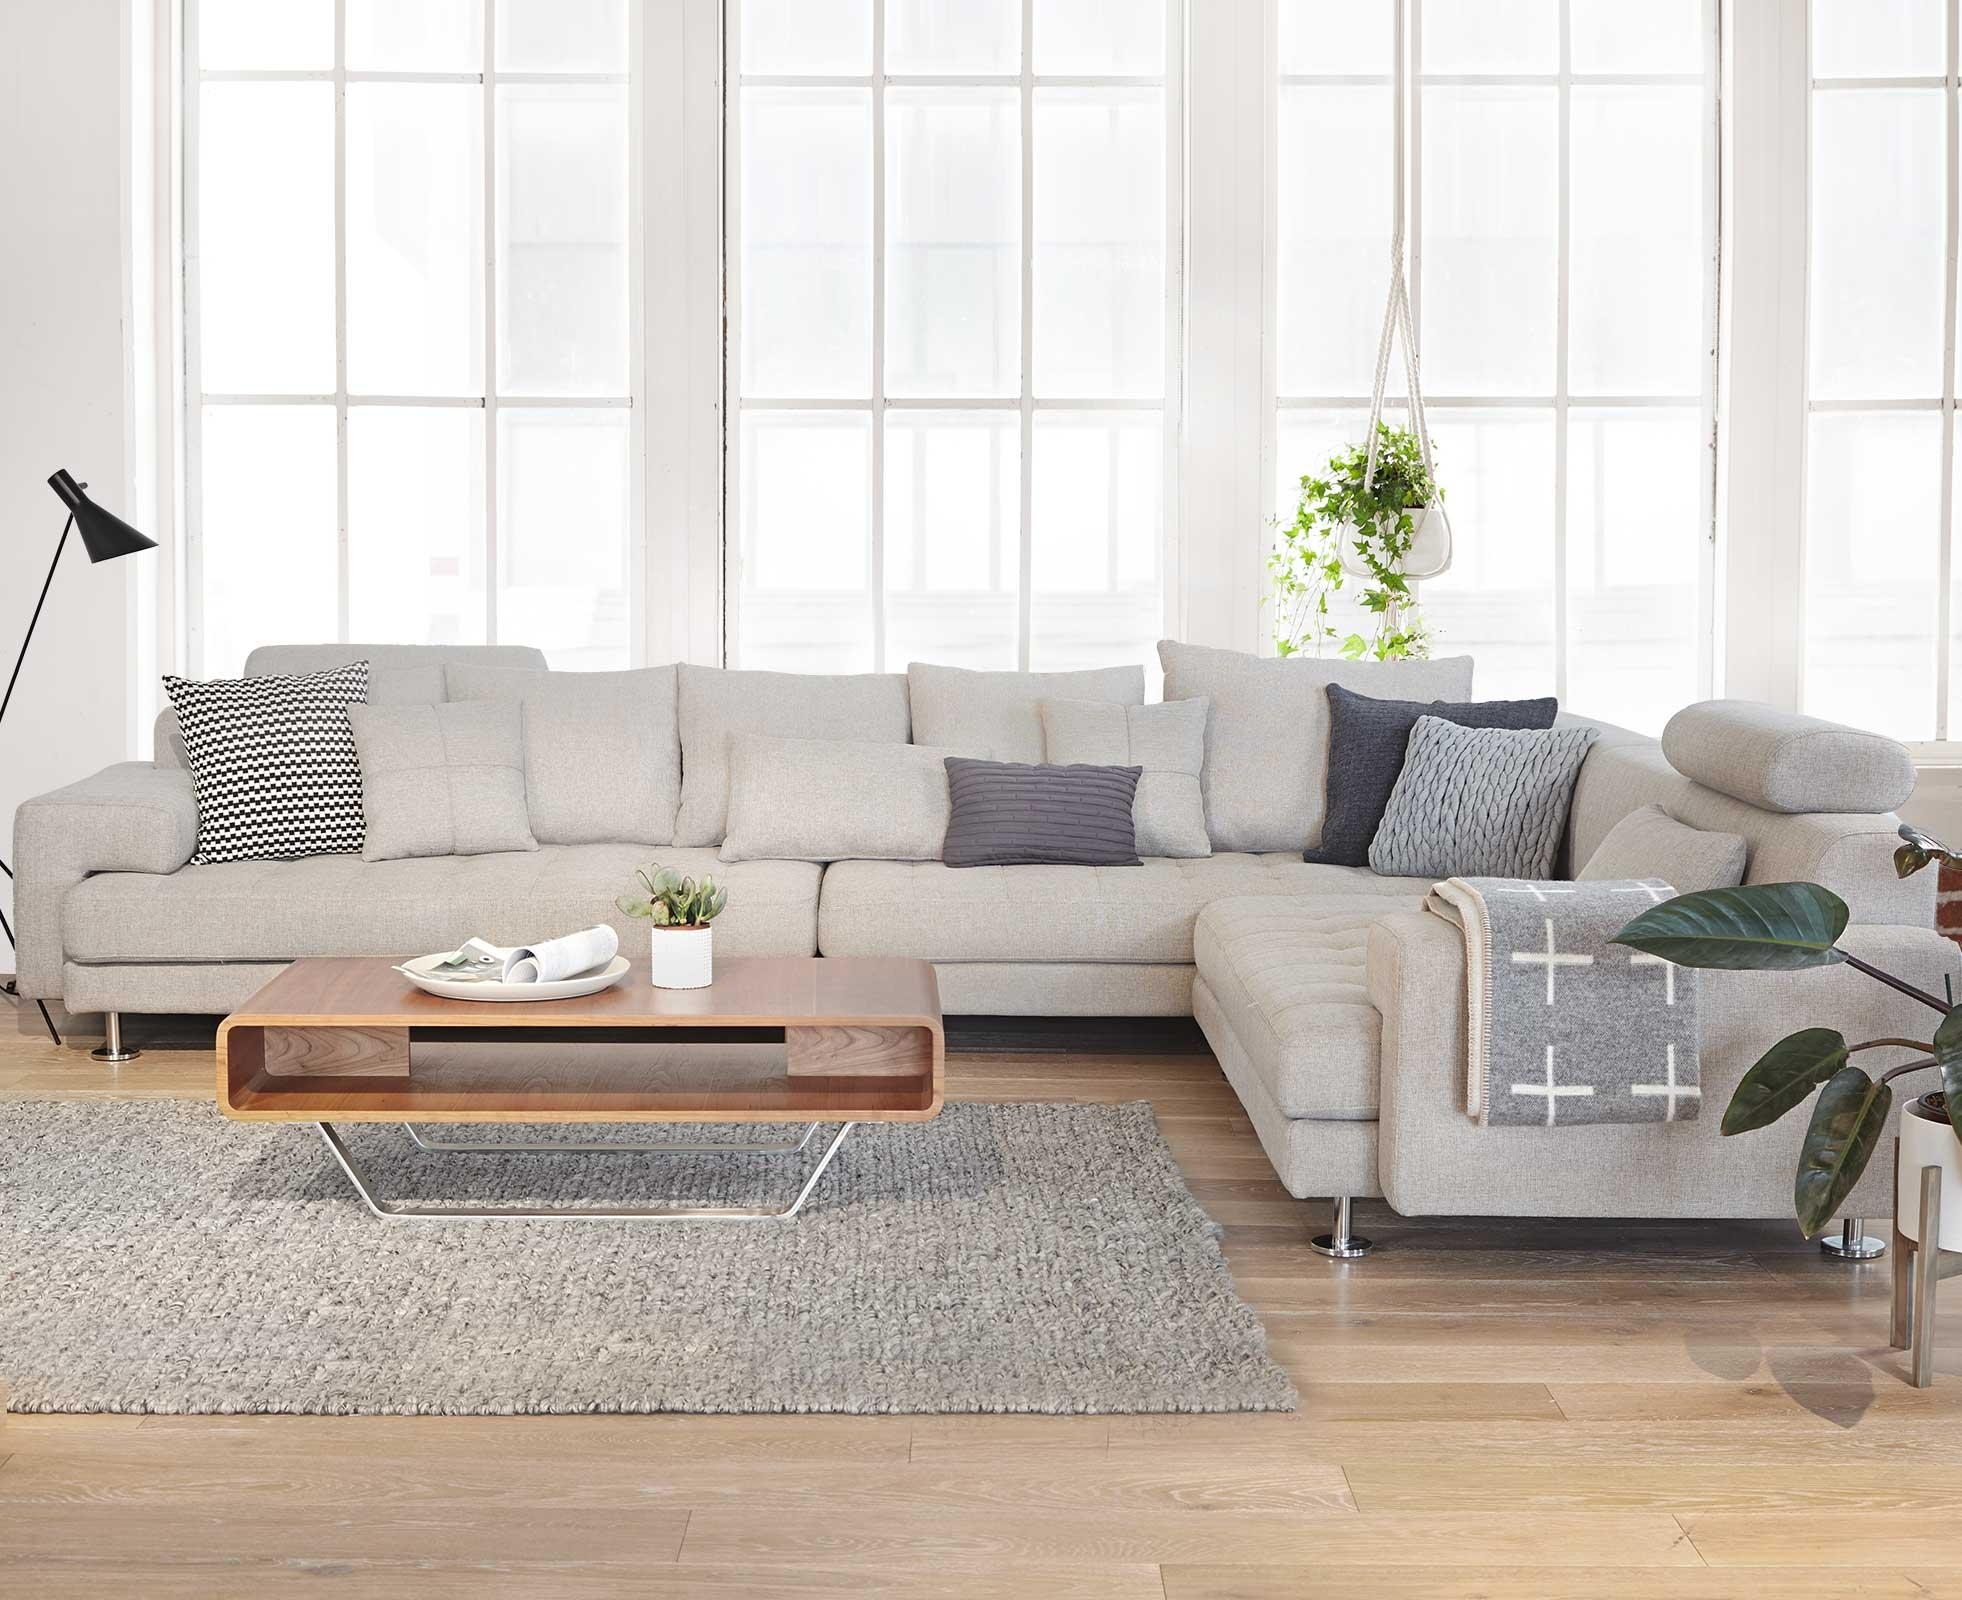 Sofas Center : Low Profile Sectional Sofa Small With Chaise Intended For Low Sectional (View 7 of 20)